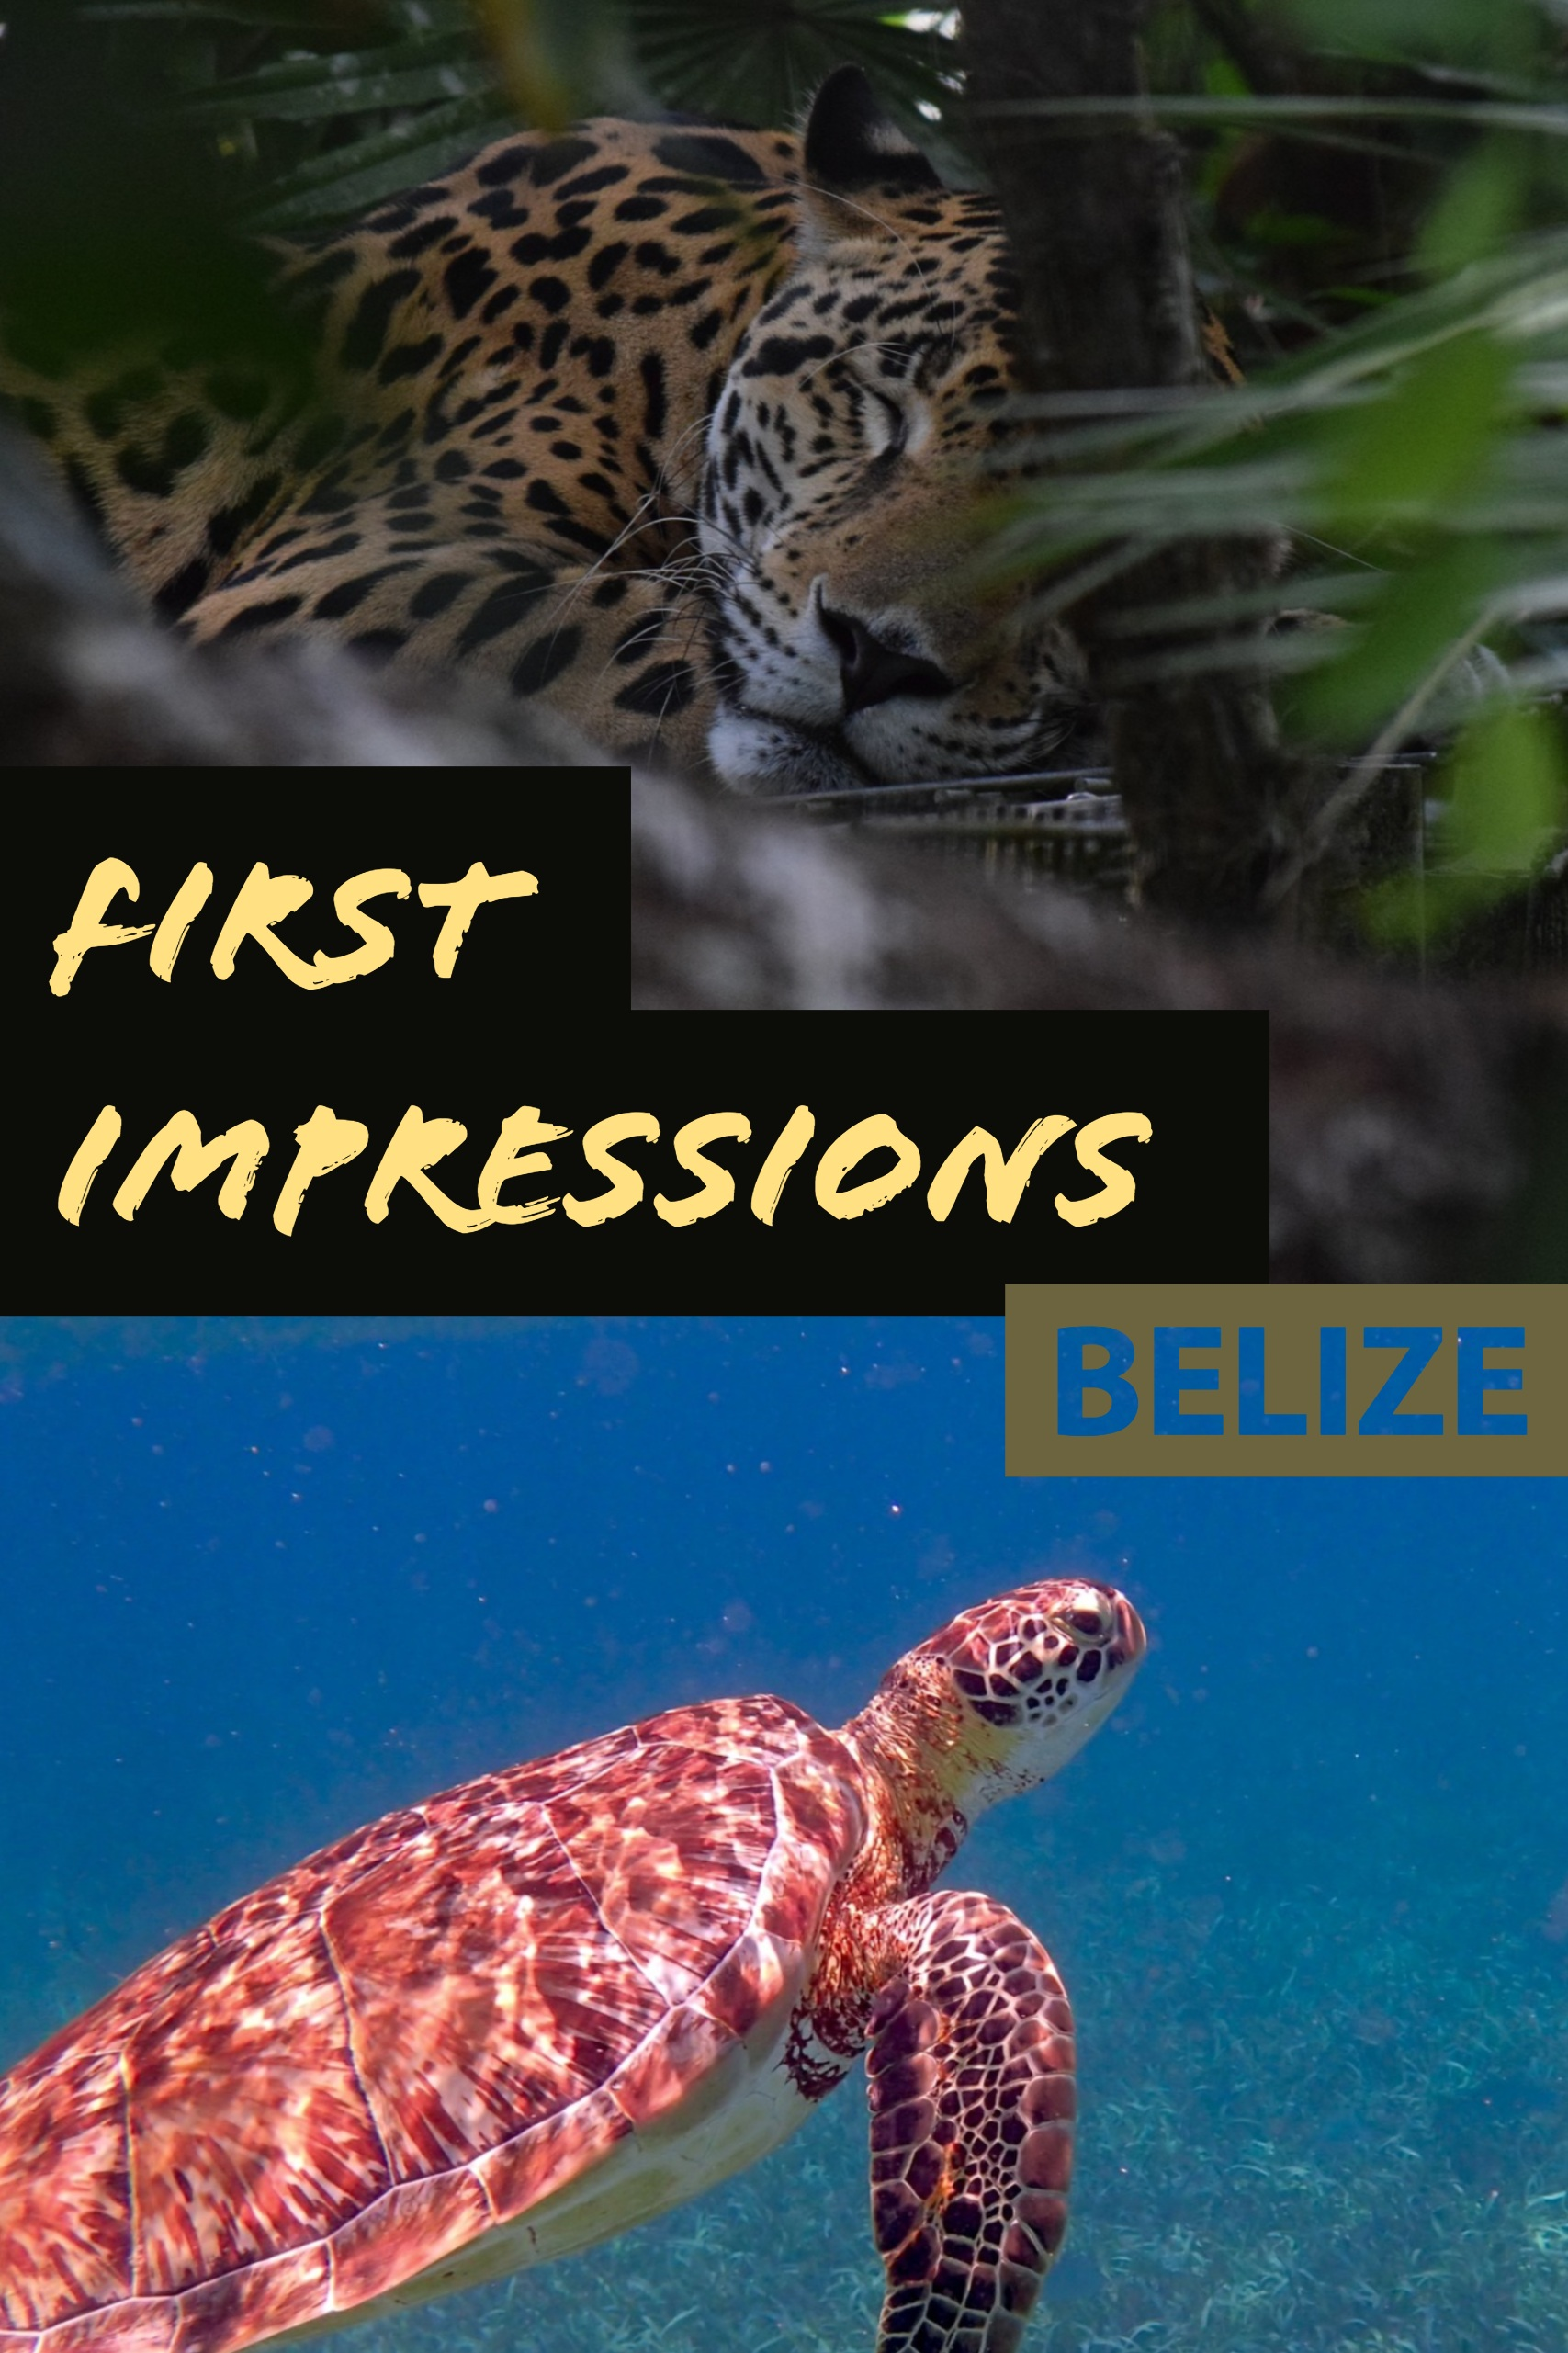 After 10 years of travel in Central America, I finally made it to Belize, my elusive last country. Here are my very first impressions after spending a few weeks there.